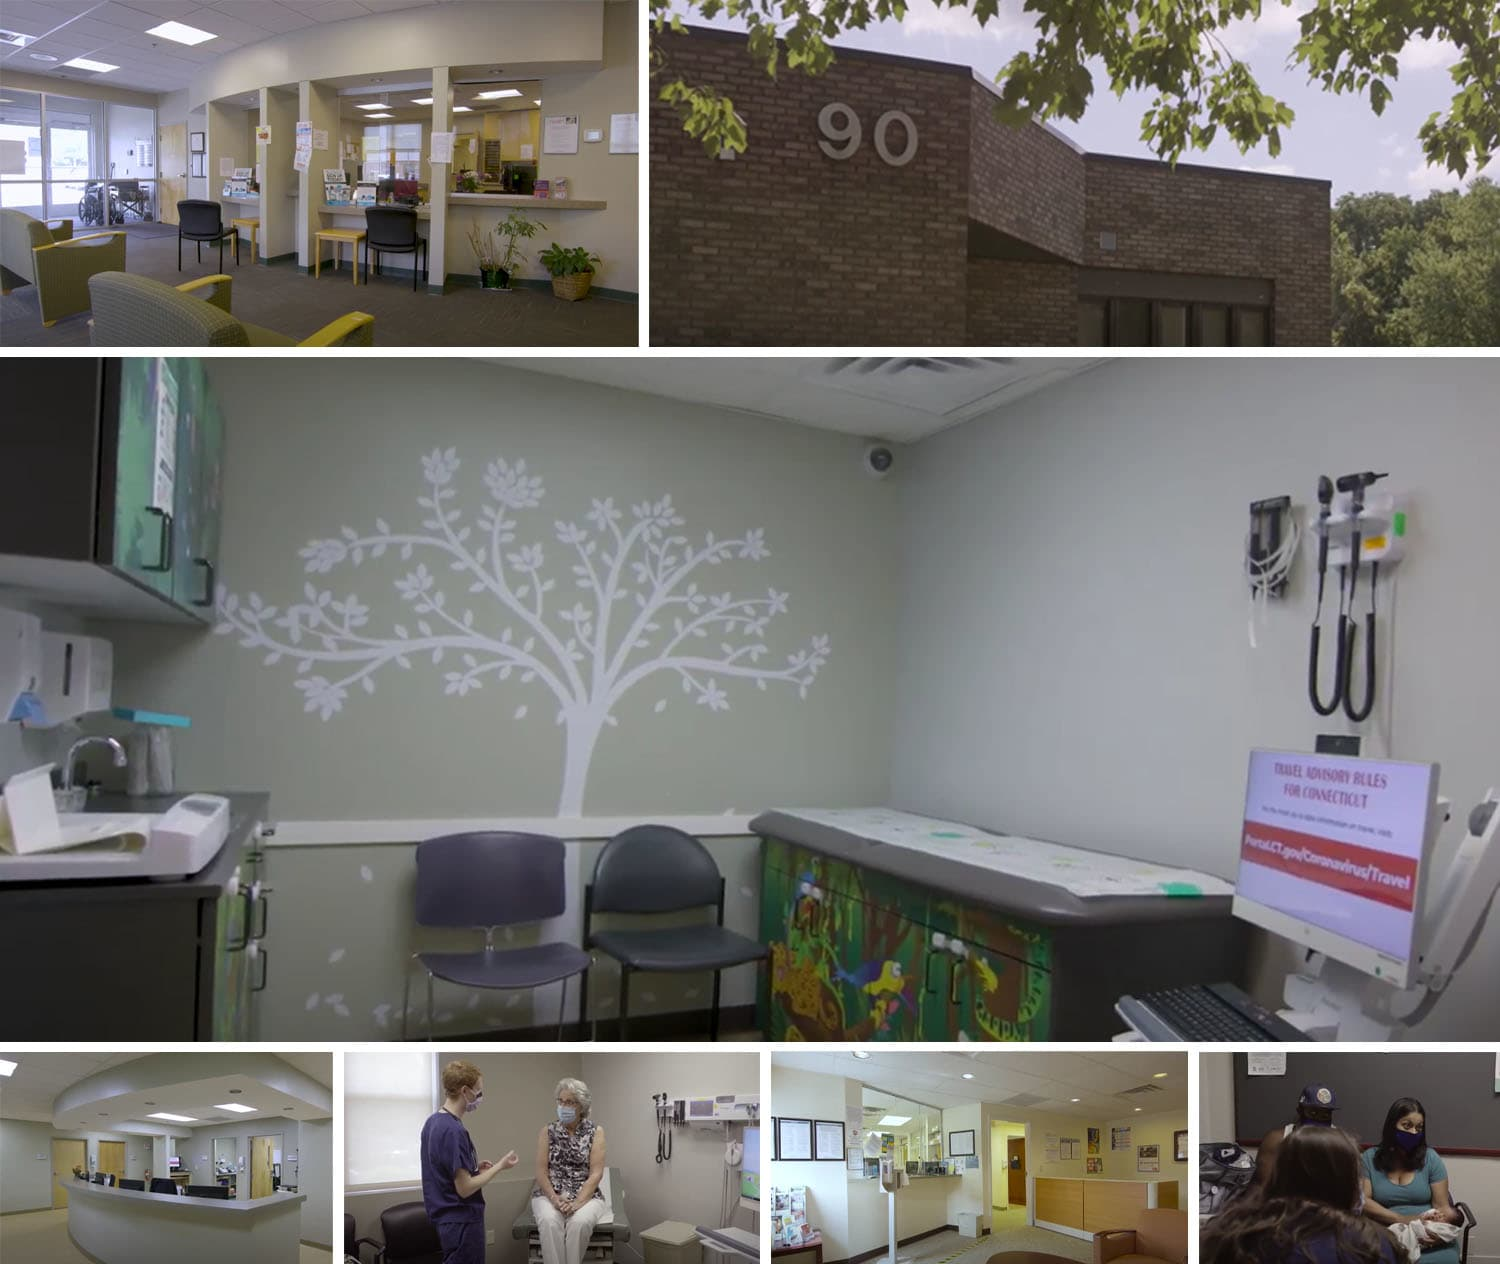 Images of Family Medicine offices.